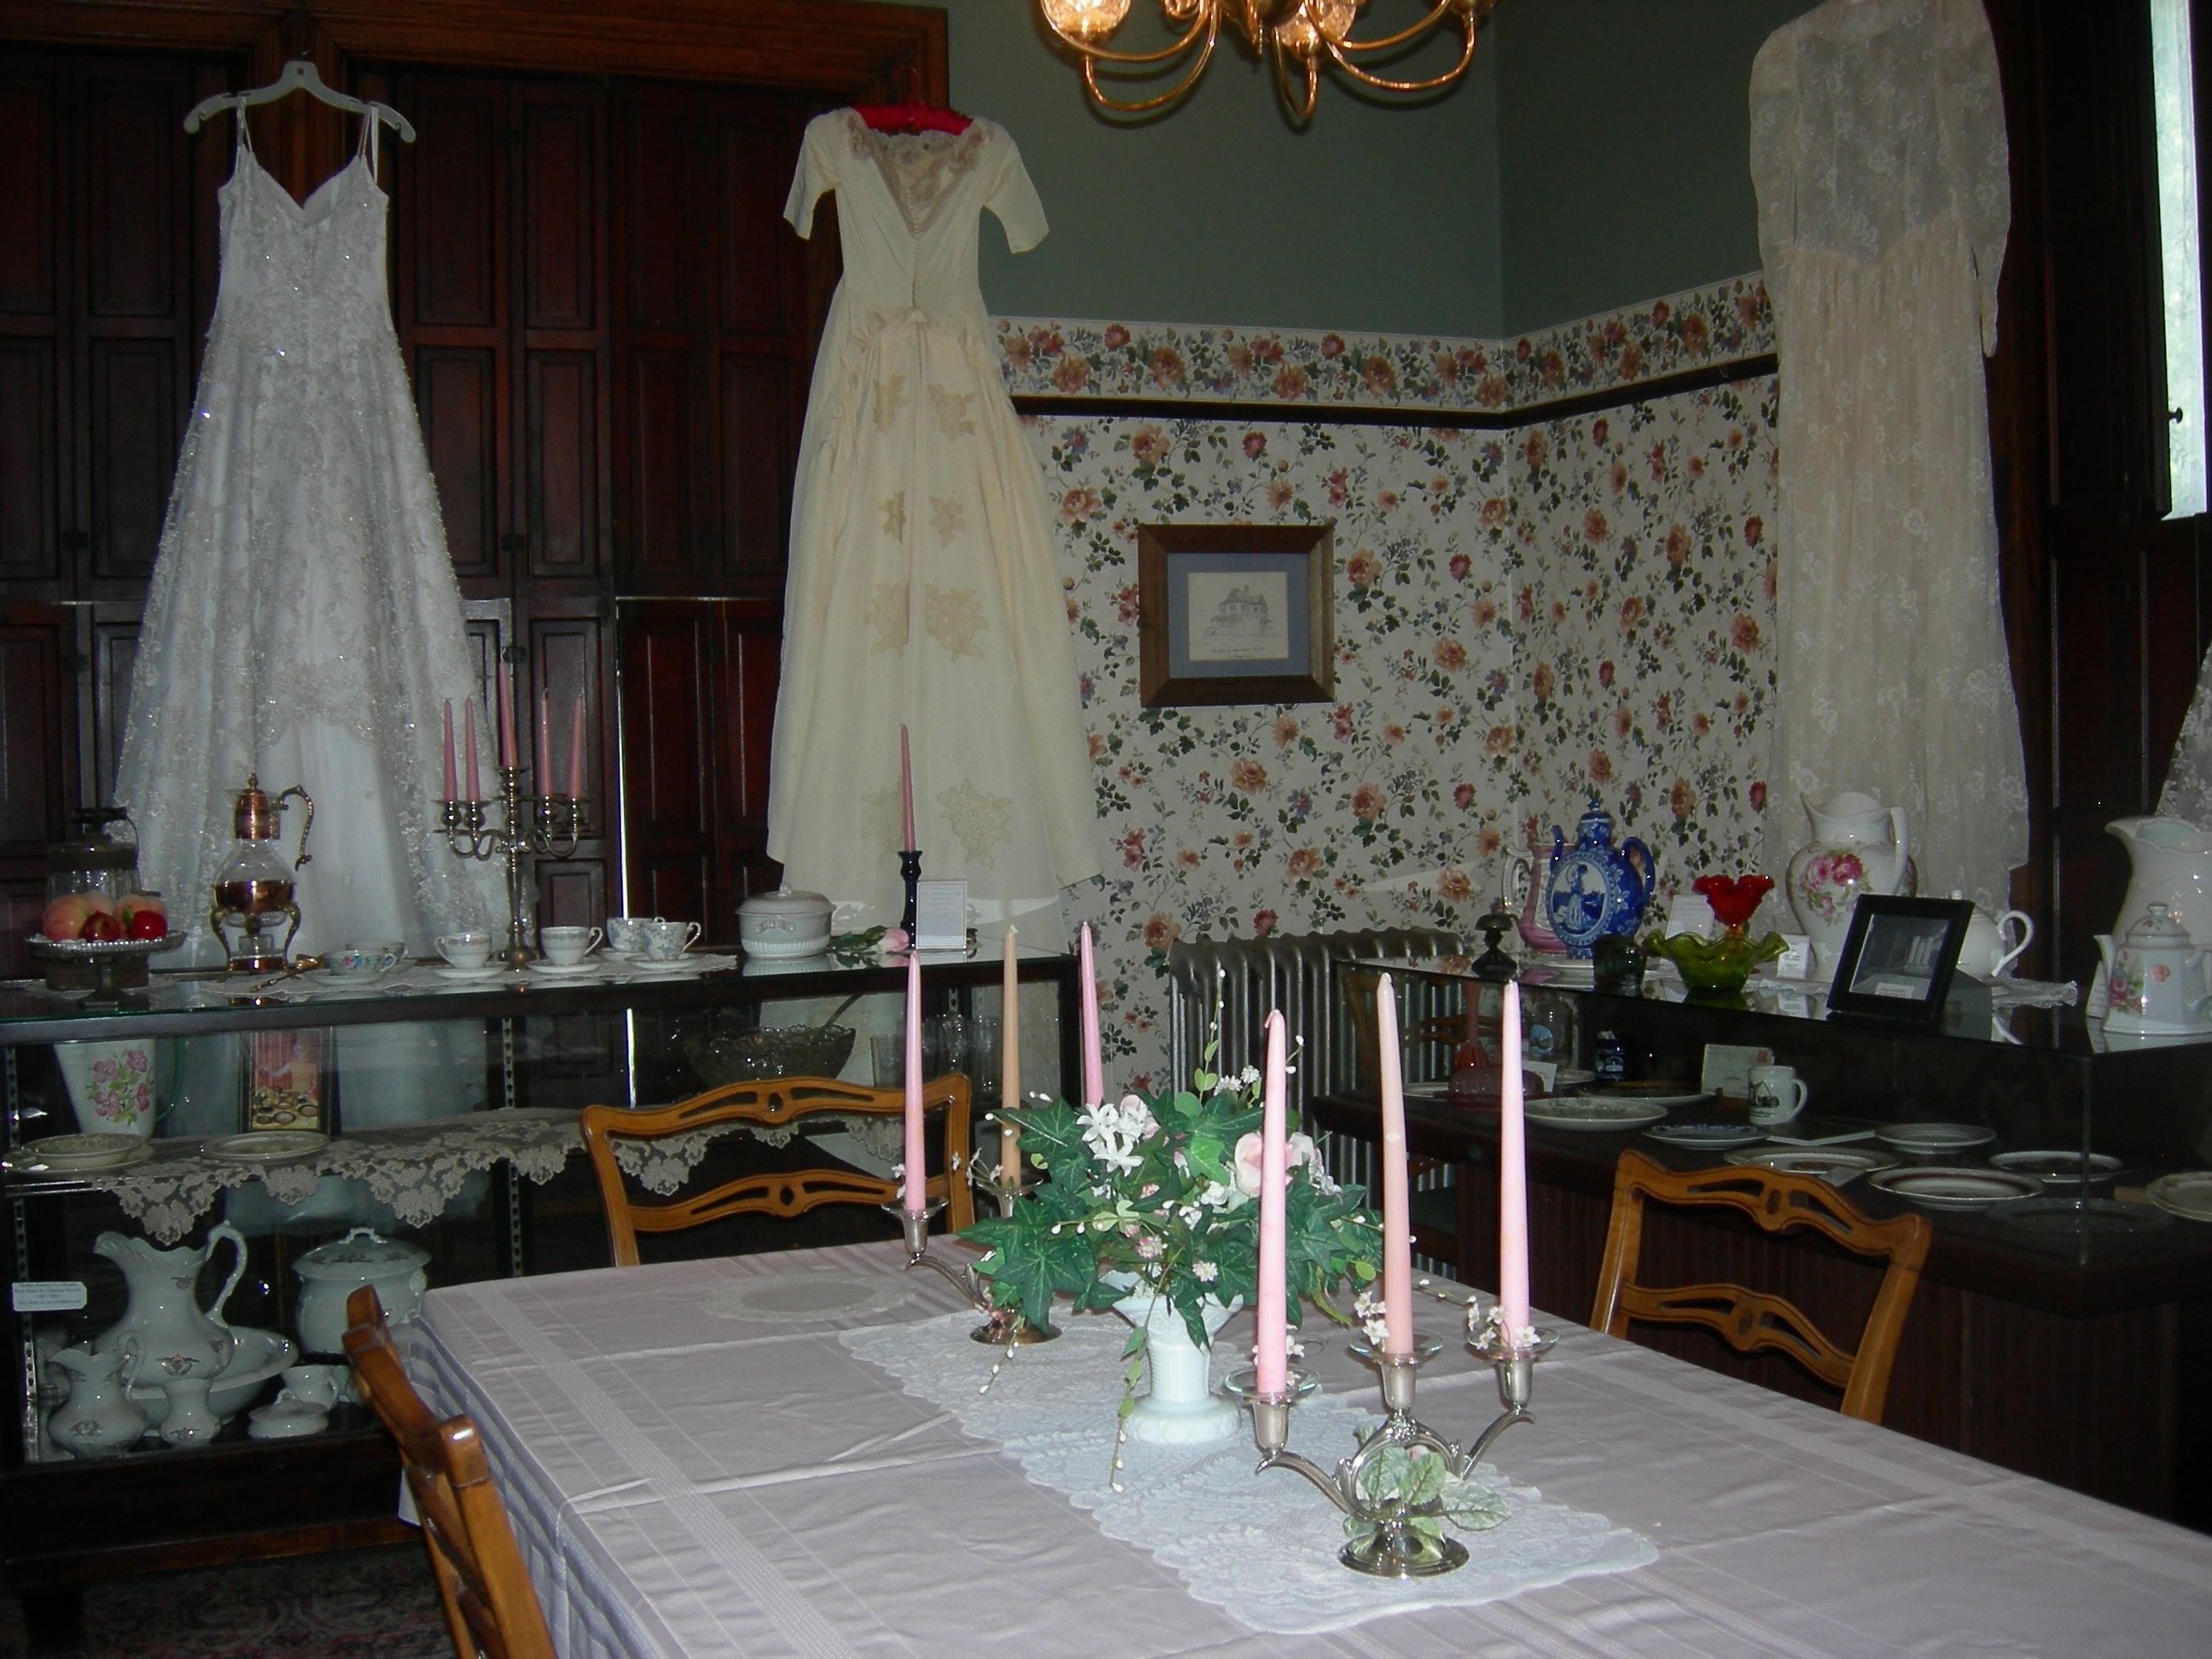 view of dining room with wedding dresses